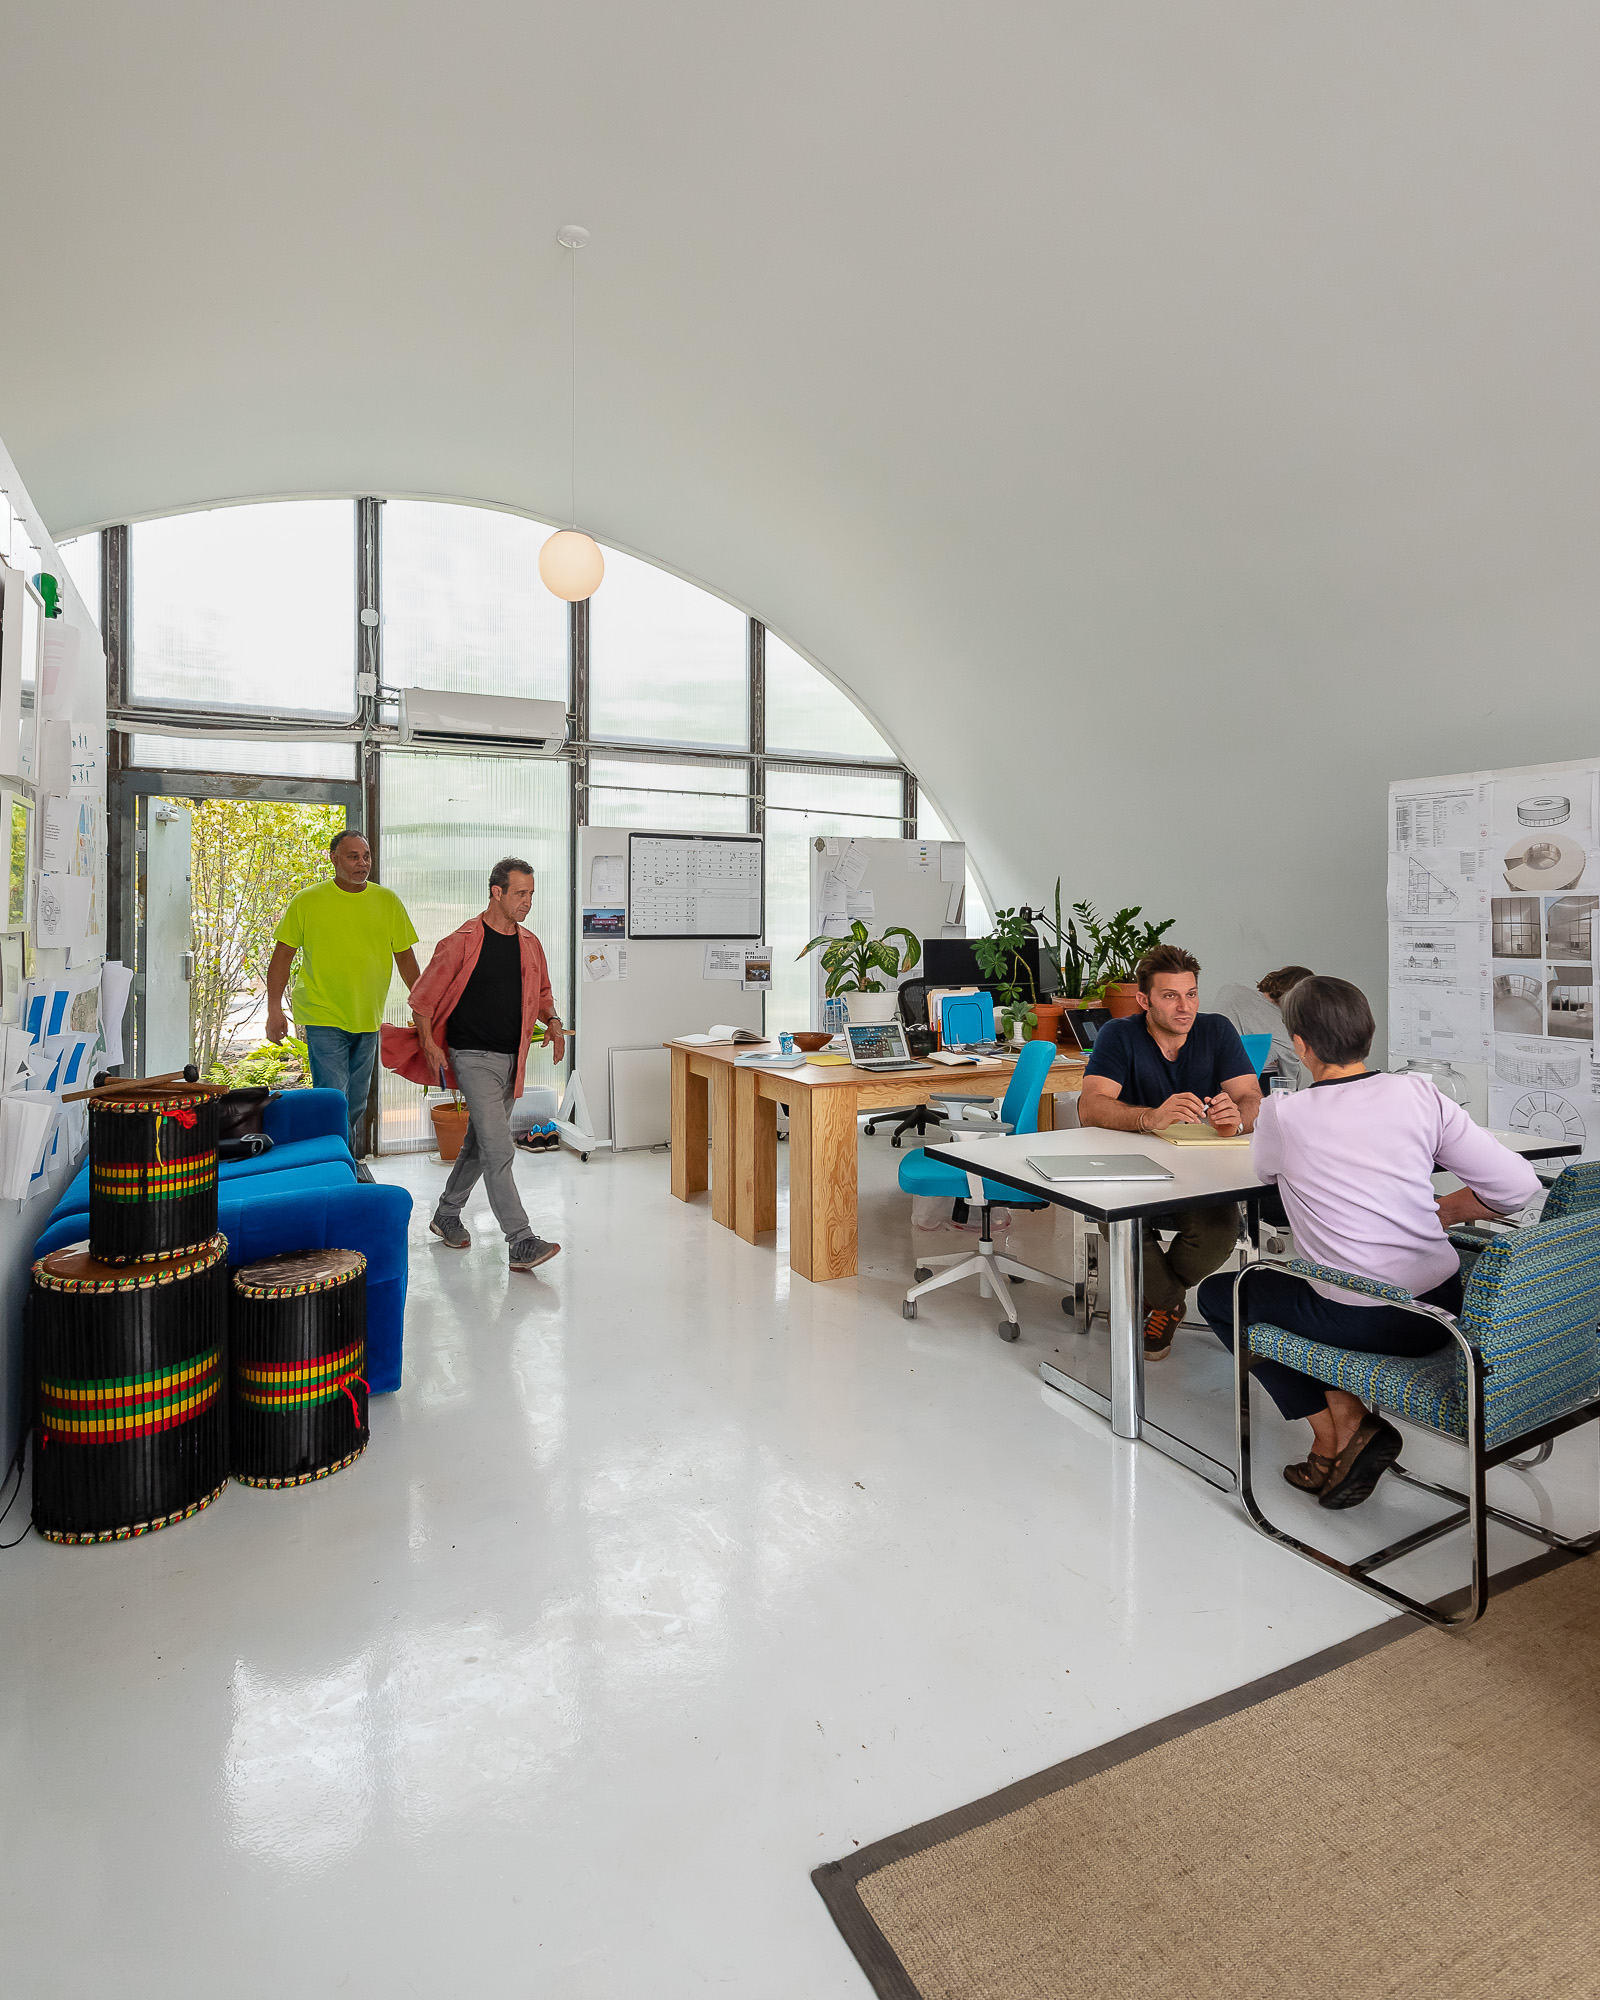 prince_concepts_office_hut_spring-15.jpg